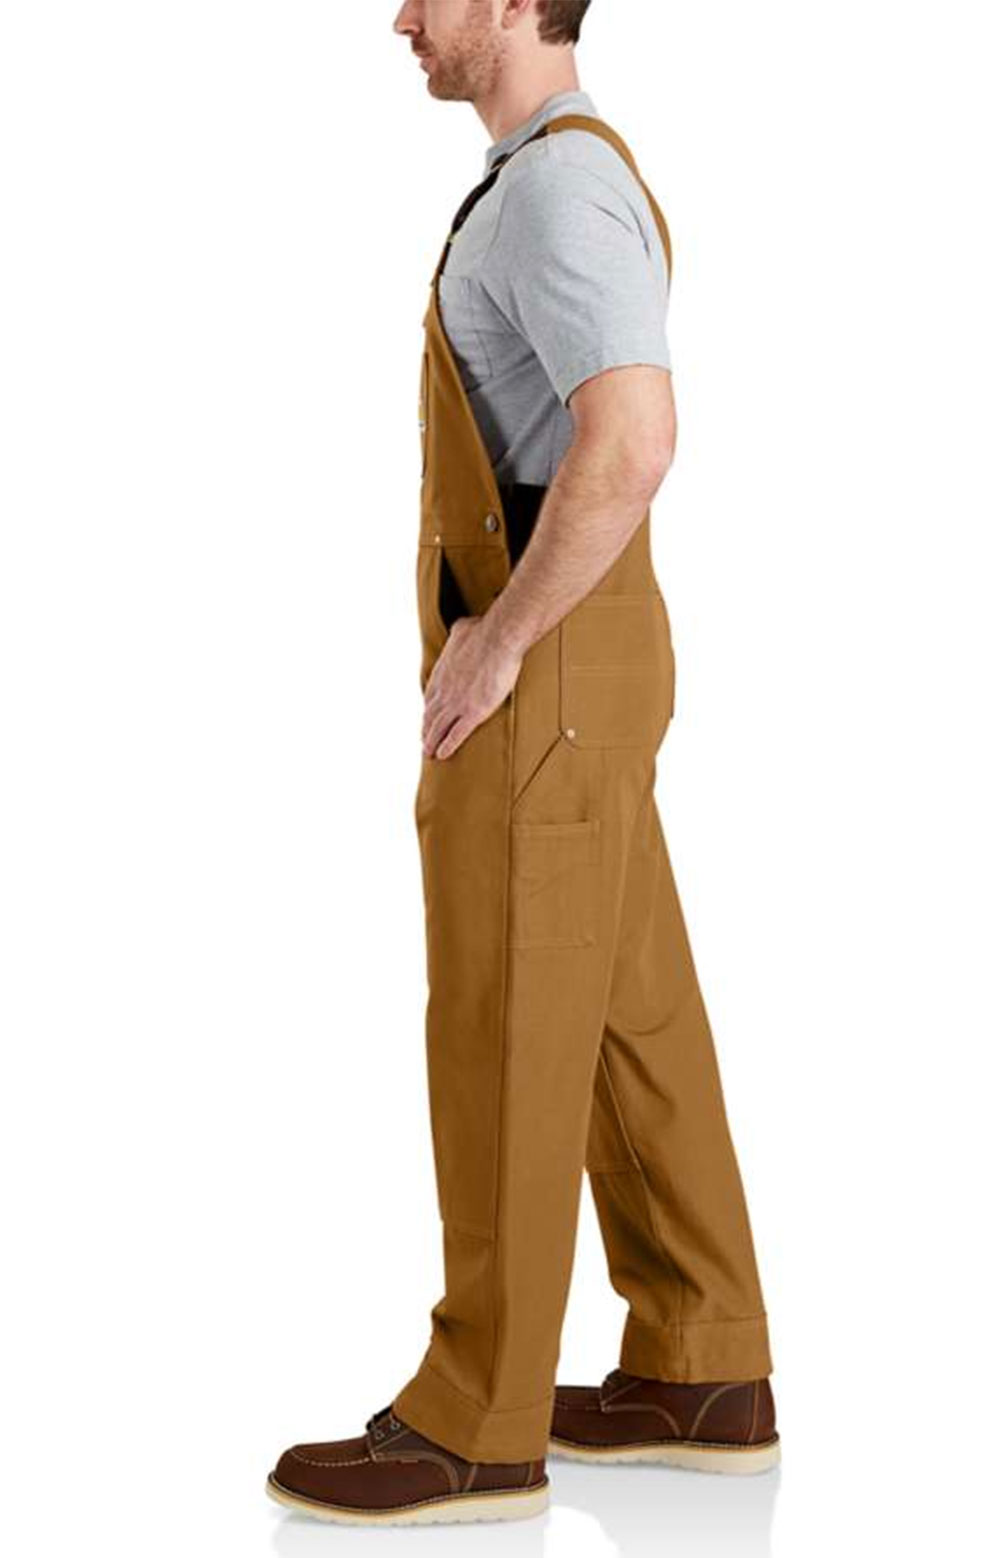 (102776) Relaxed Fit Duck Bib Overalls - Carhartt Brown 4